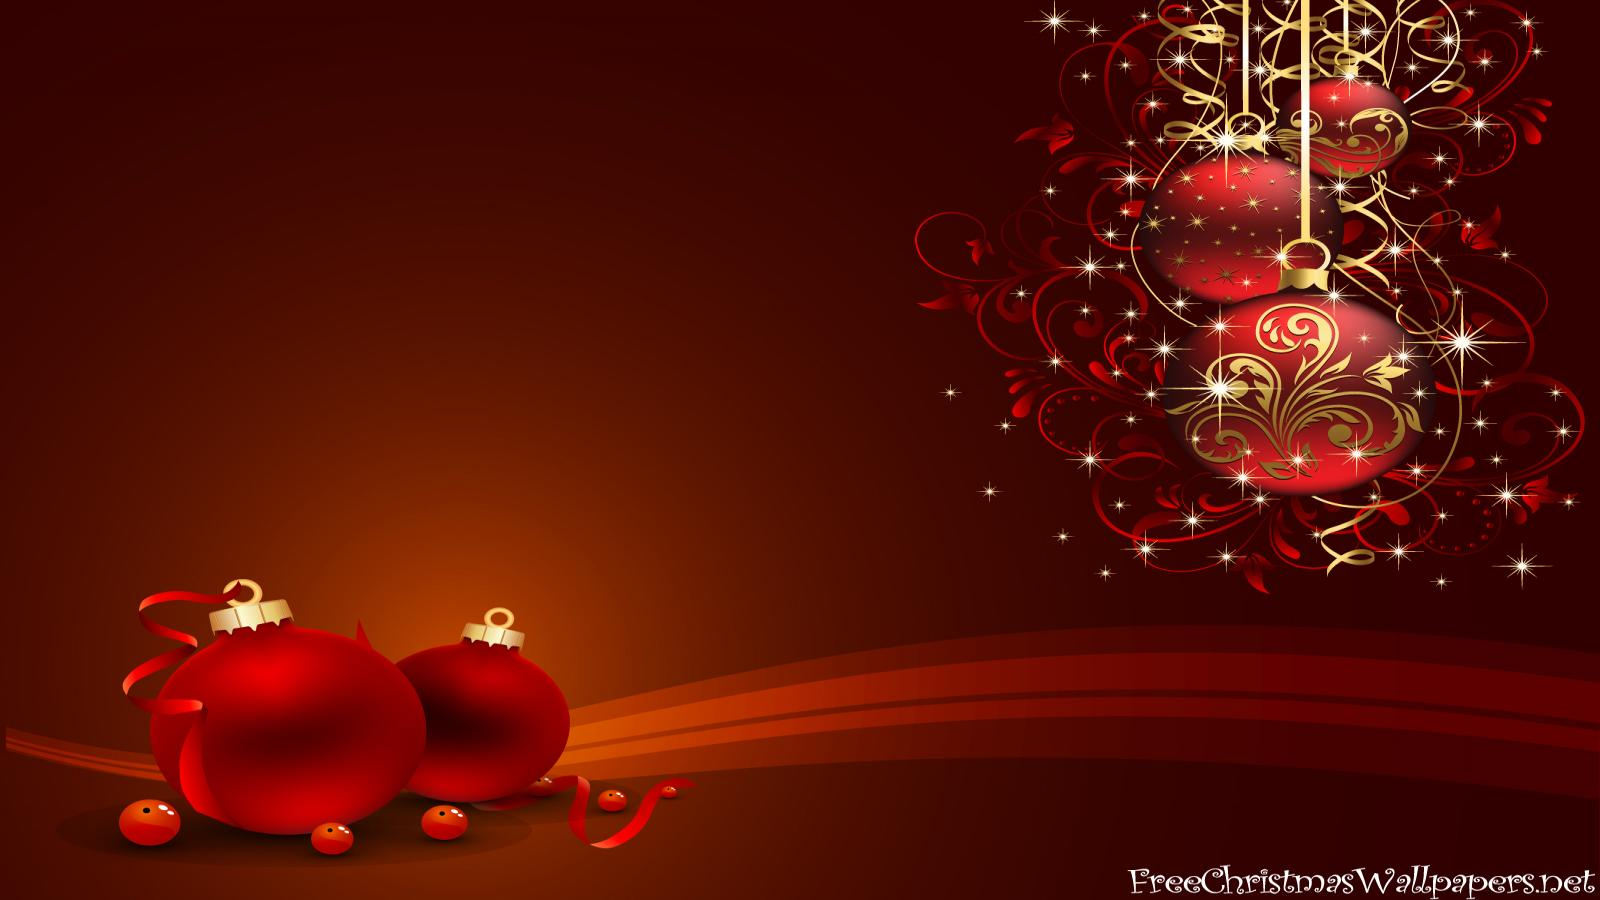 After Christmas HD Wallpapers 1600x900 Christmas Wallpapers 1600x900 1600x900